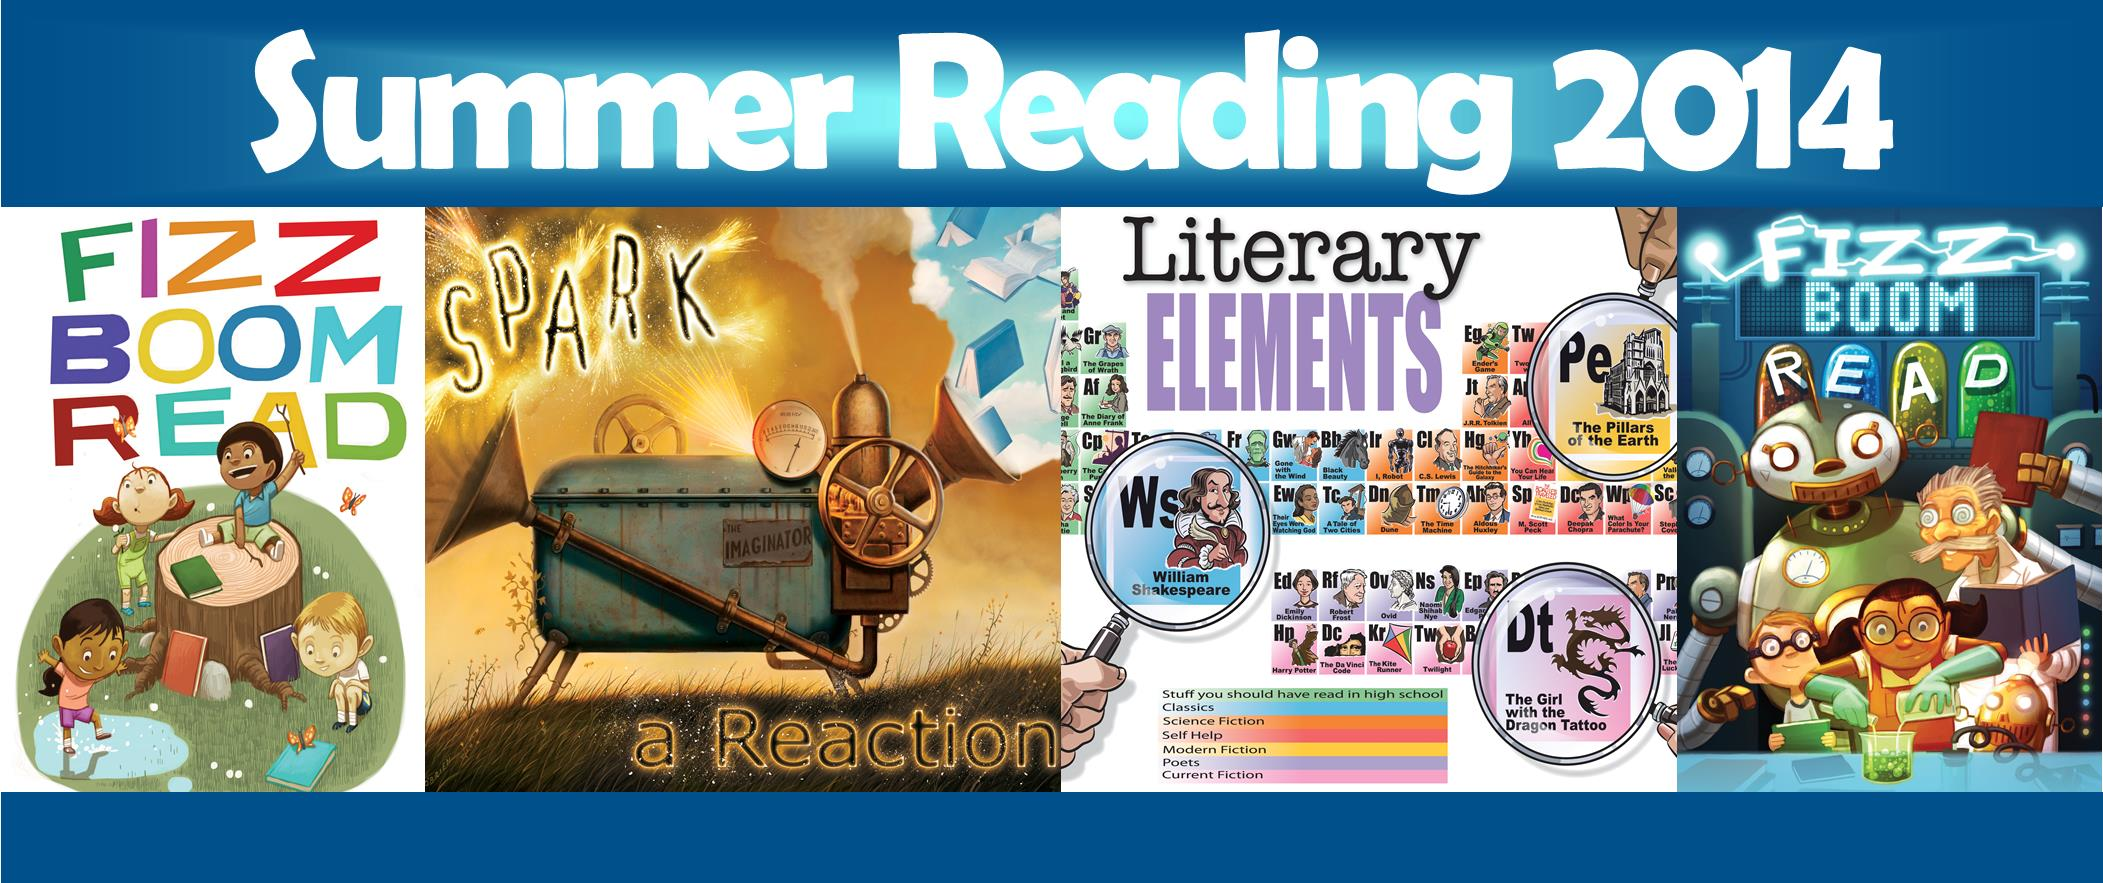 Fizz, Boom, Read! Summer Reading Program 2014